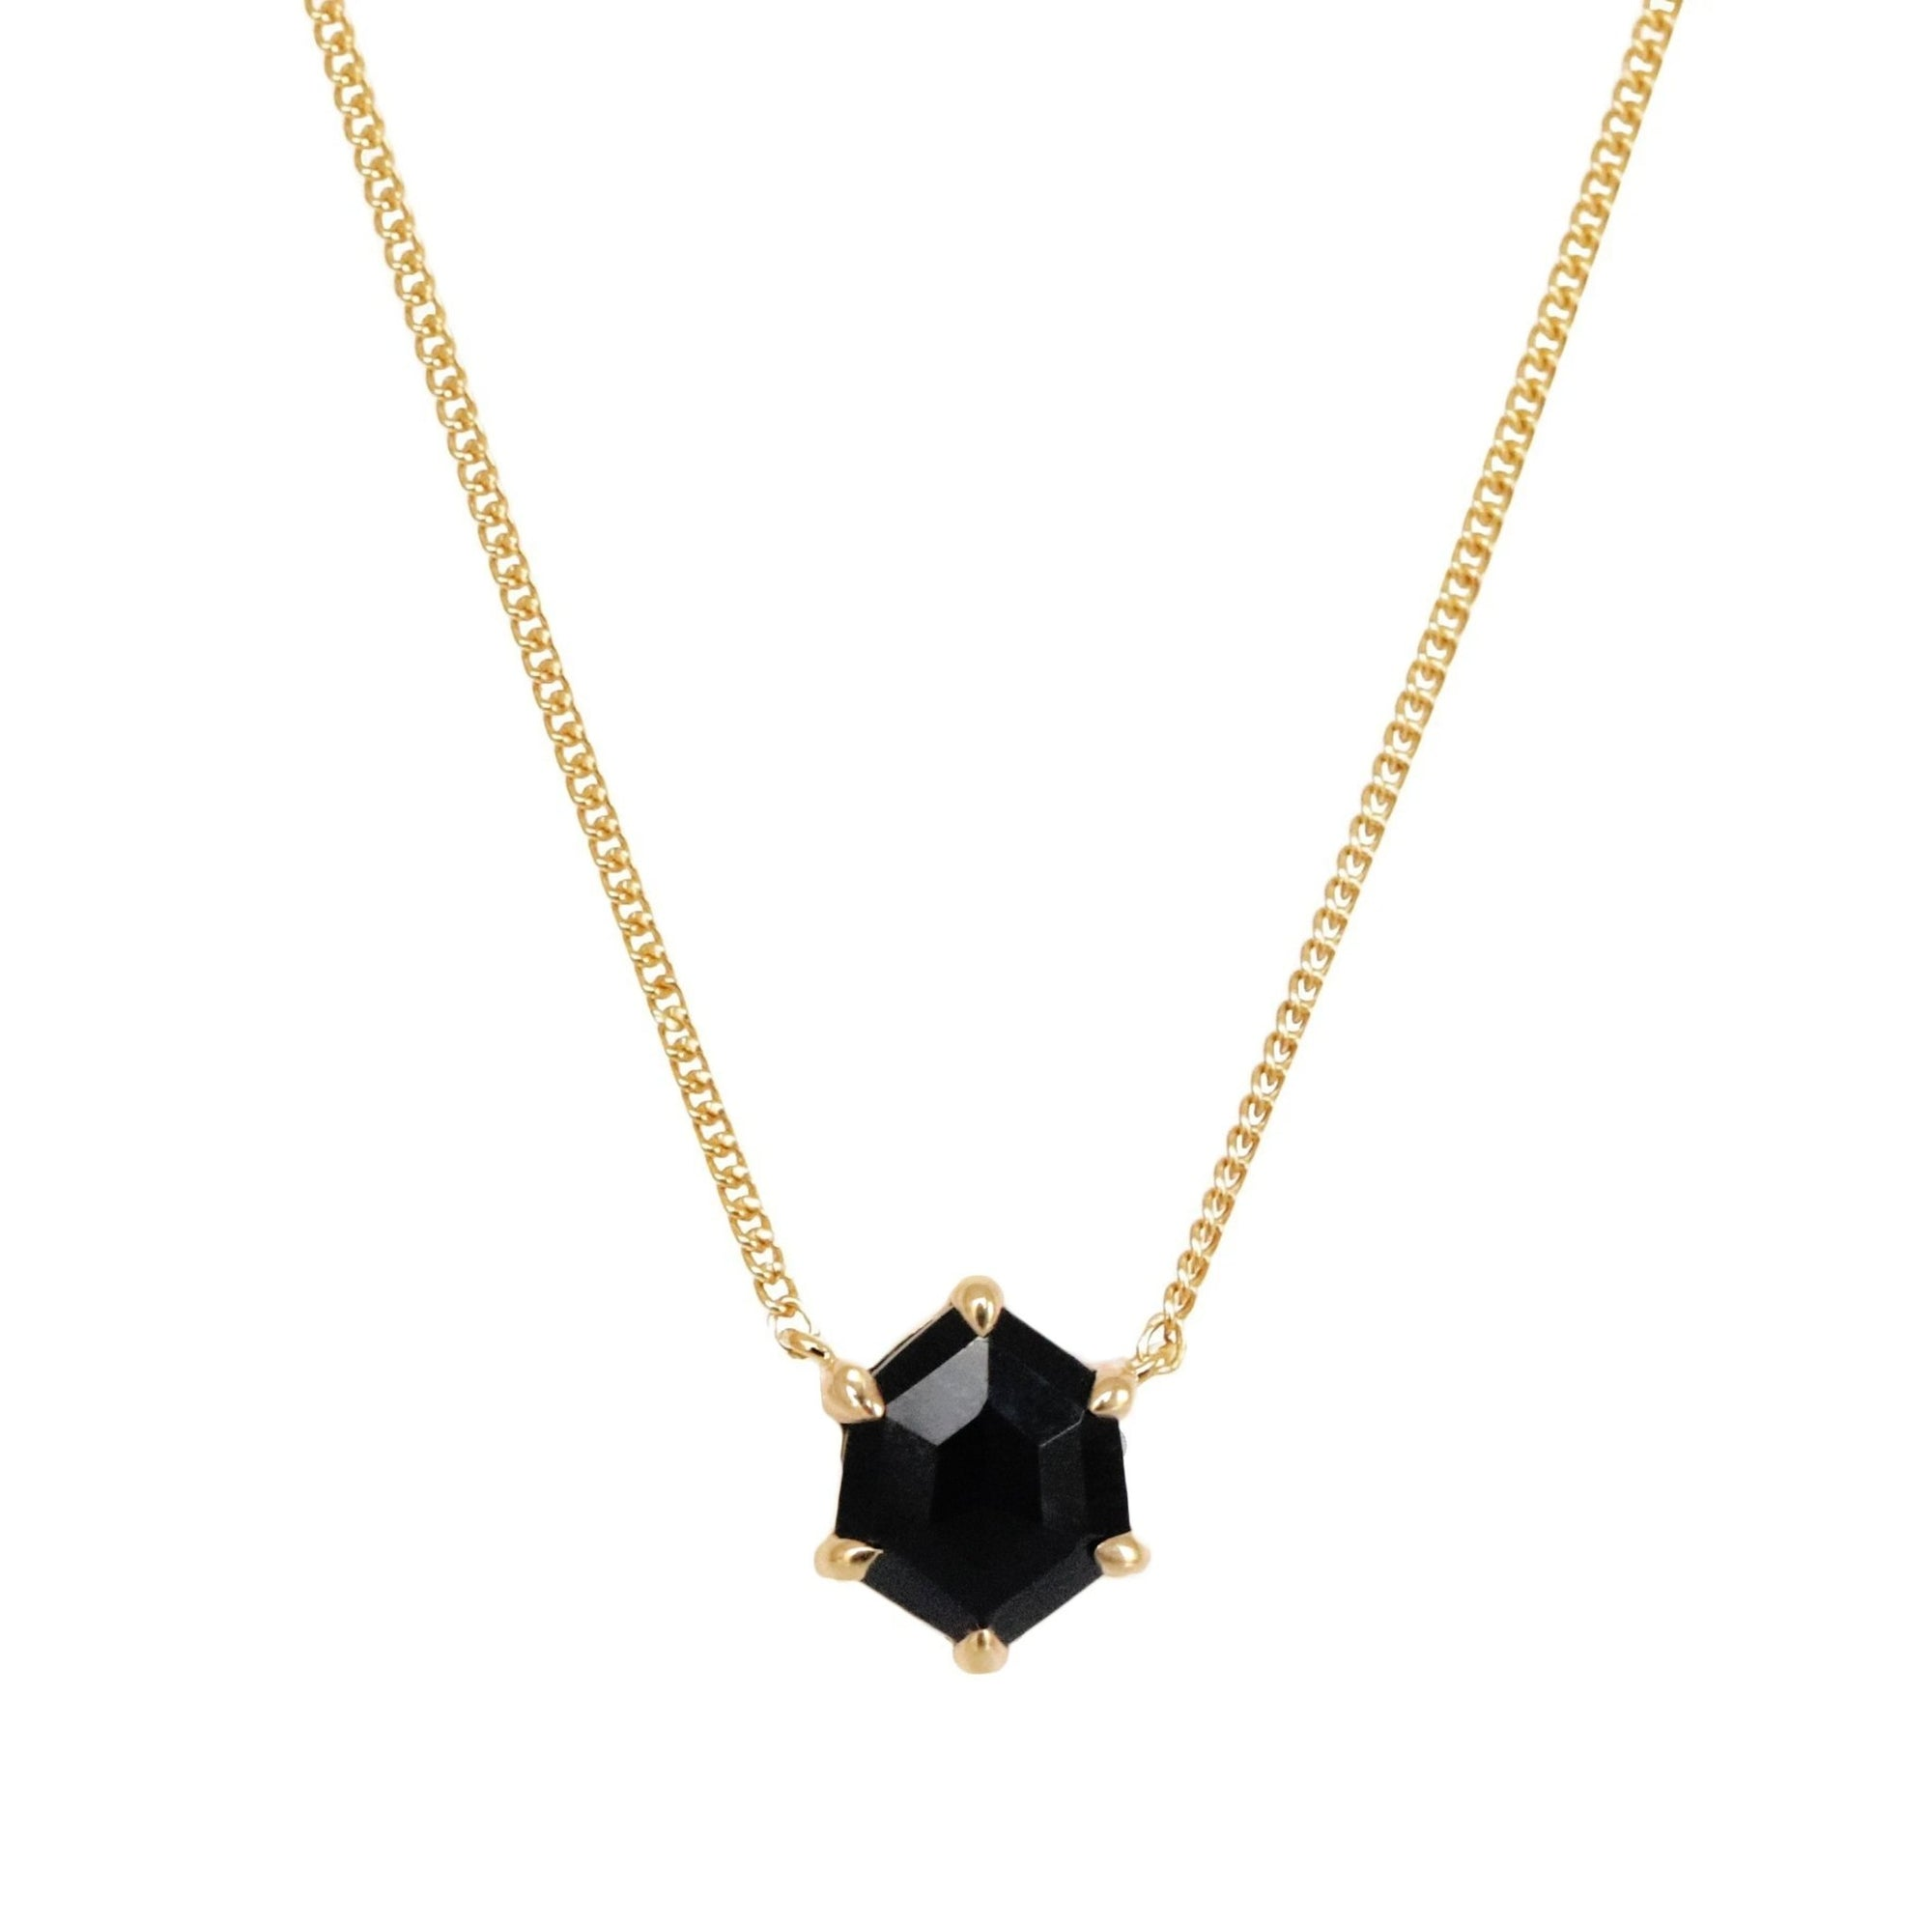 DAY 6 - MINI HONOUR NECKLACE - BLACK ONYX & GOLD - SO PRETTY CARA COTTER